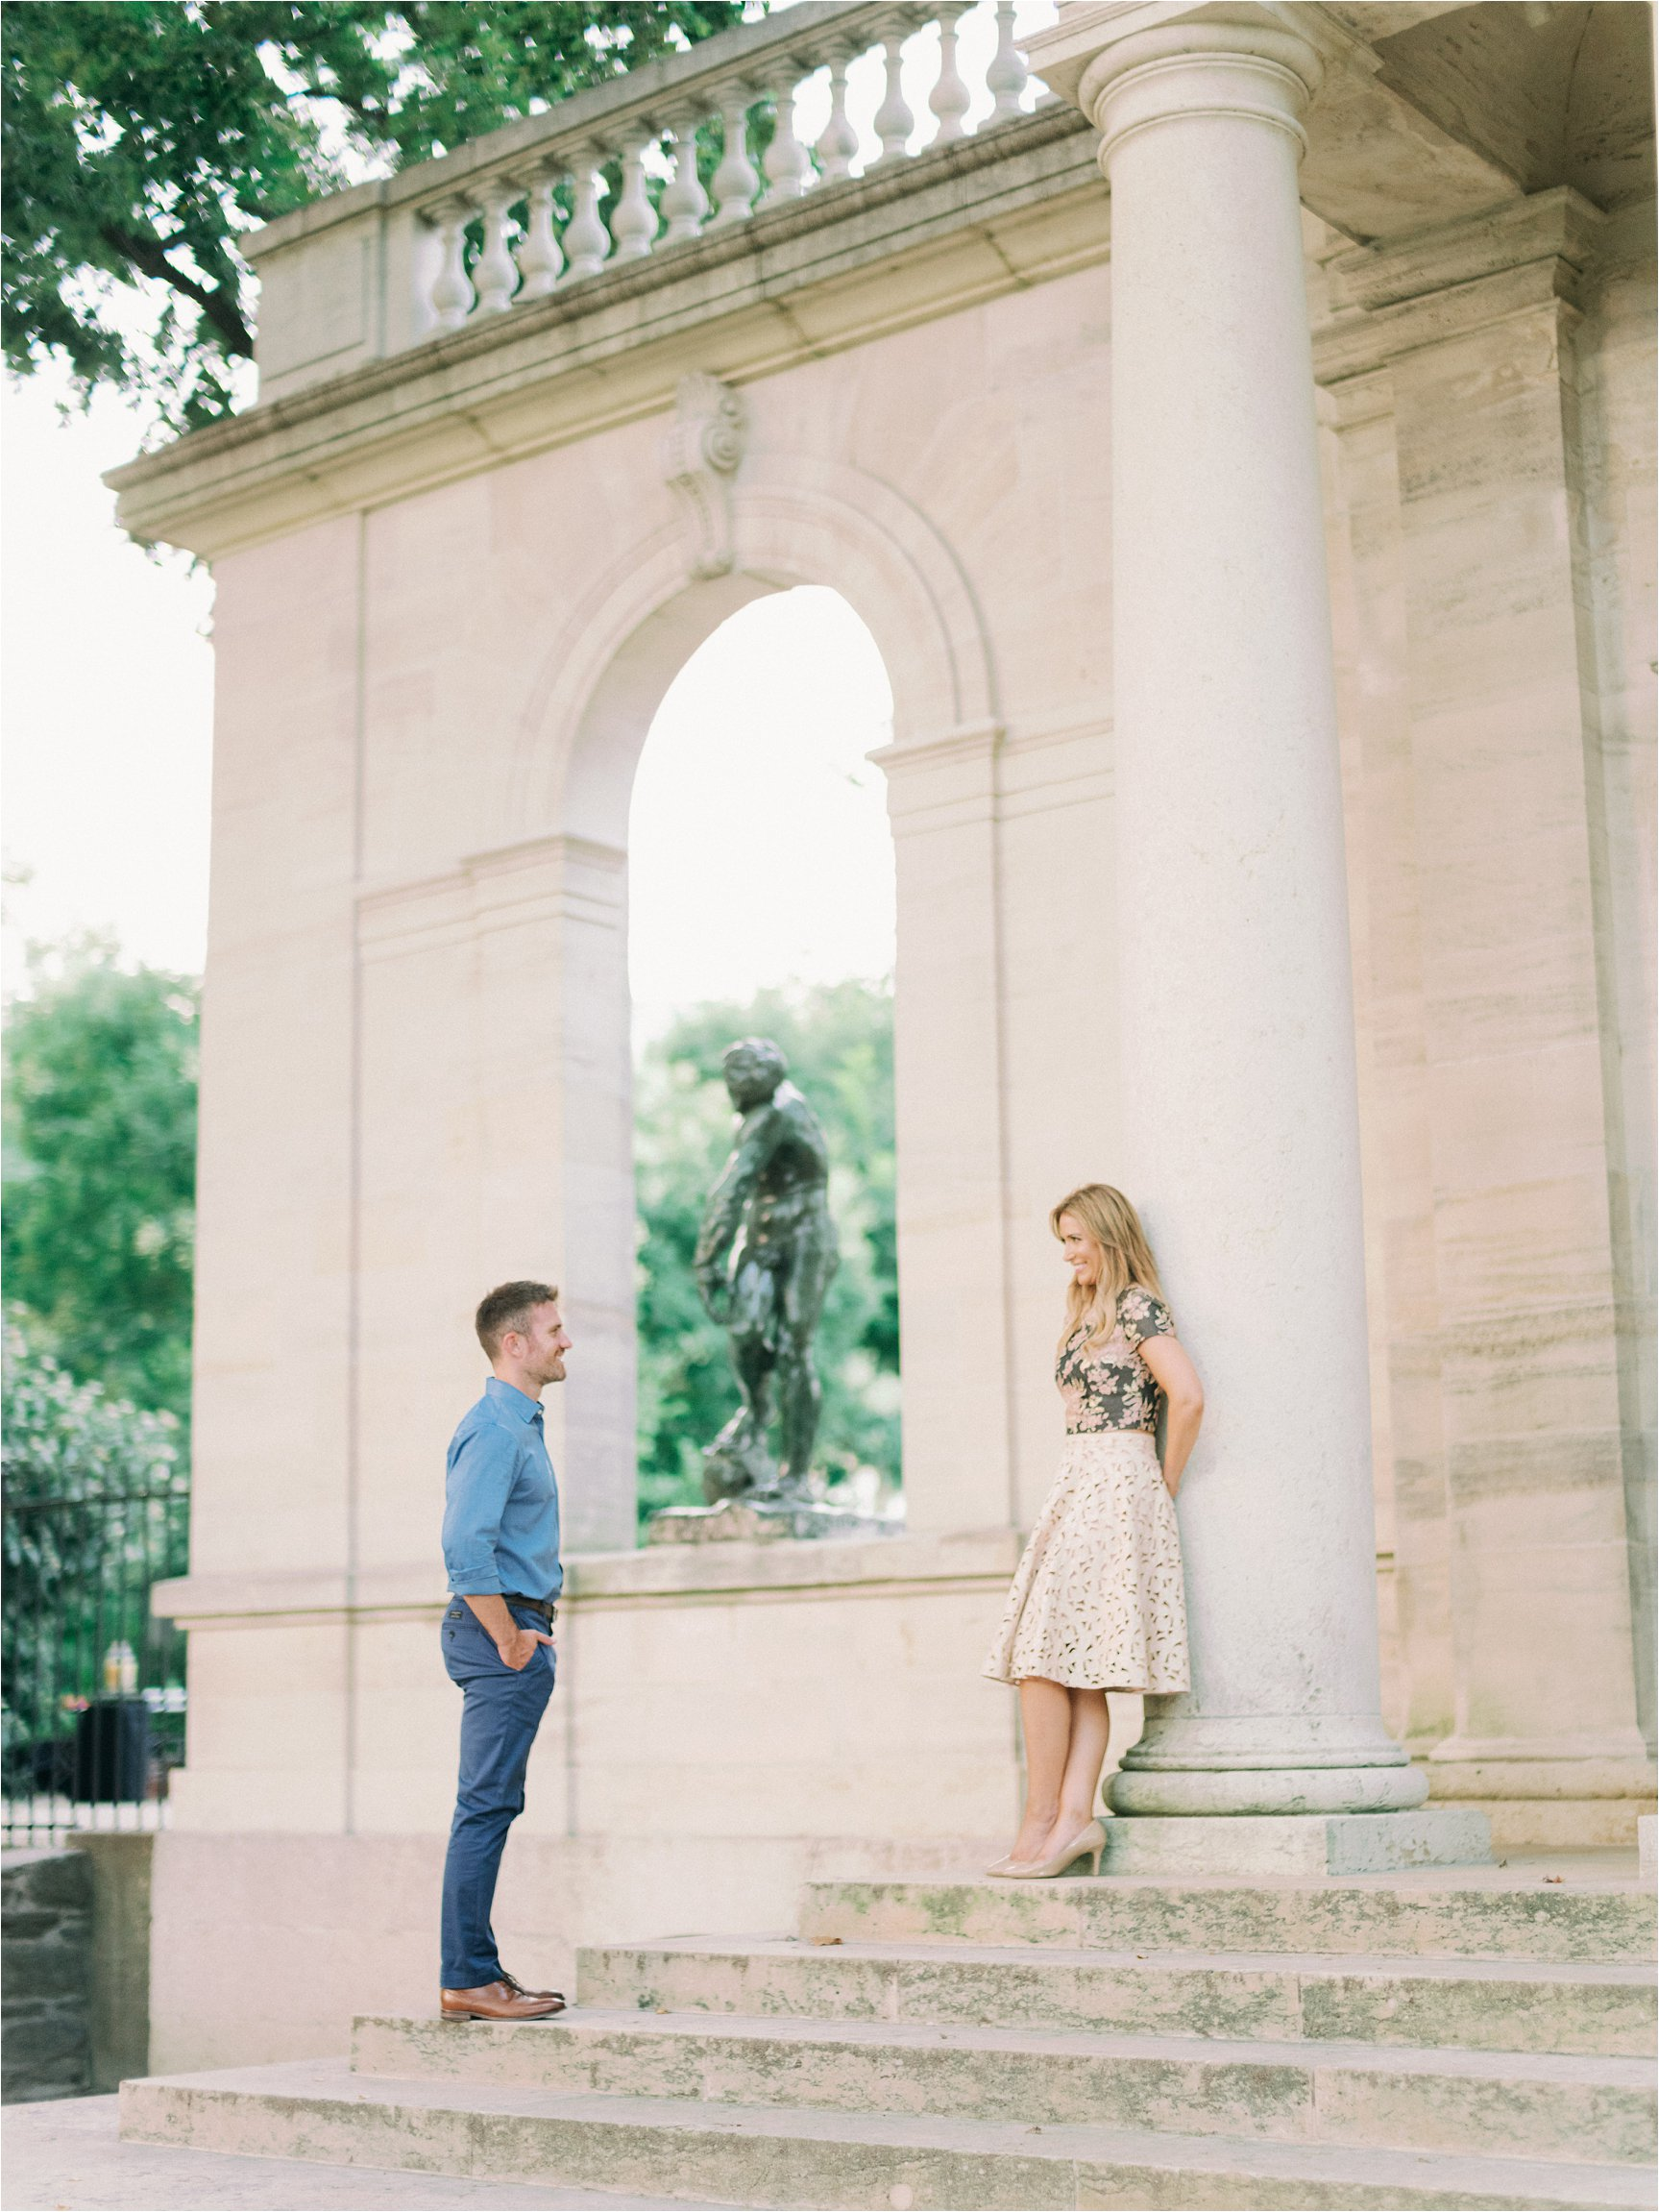 Philly_Engagement_Shoot189.JPG